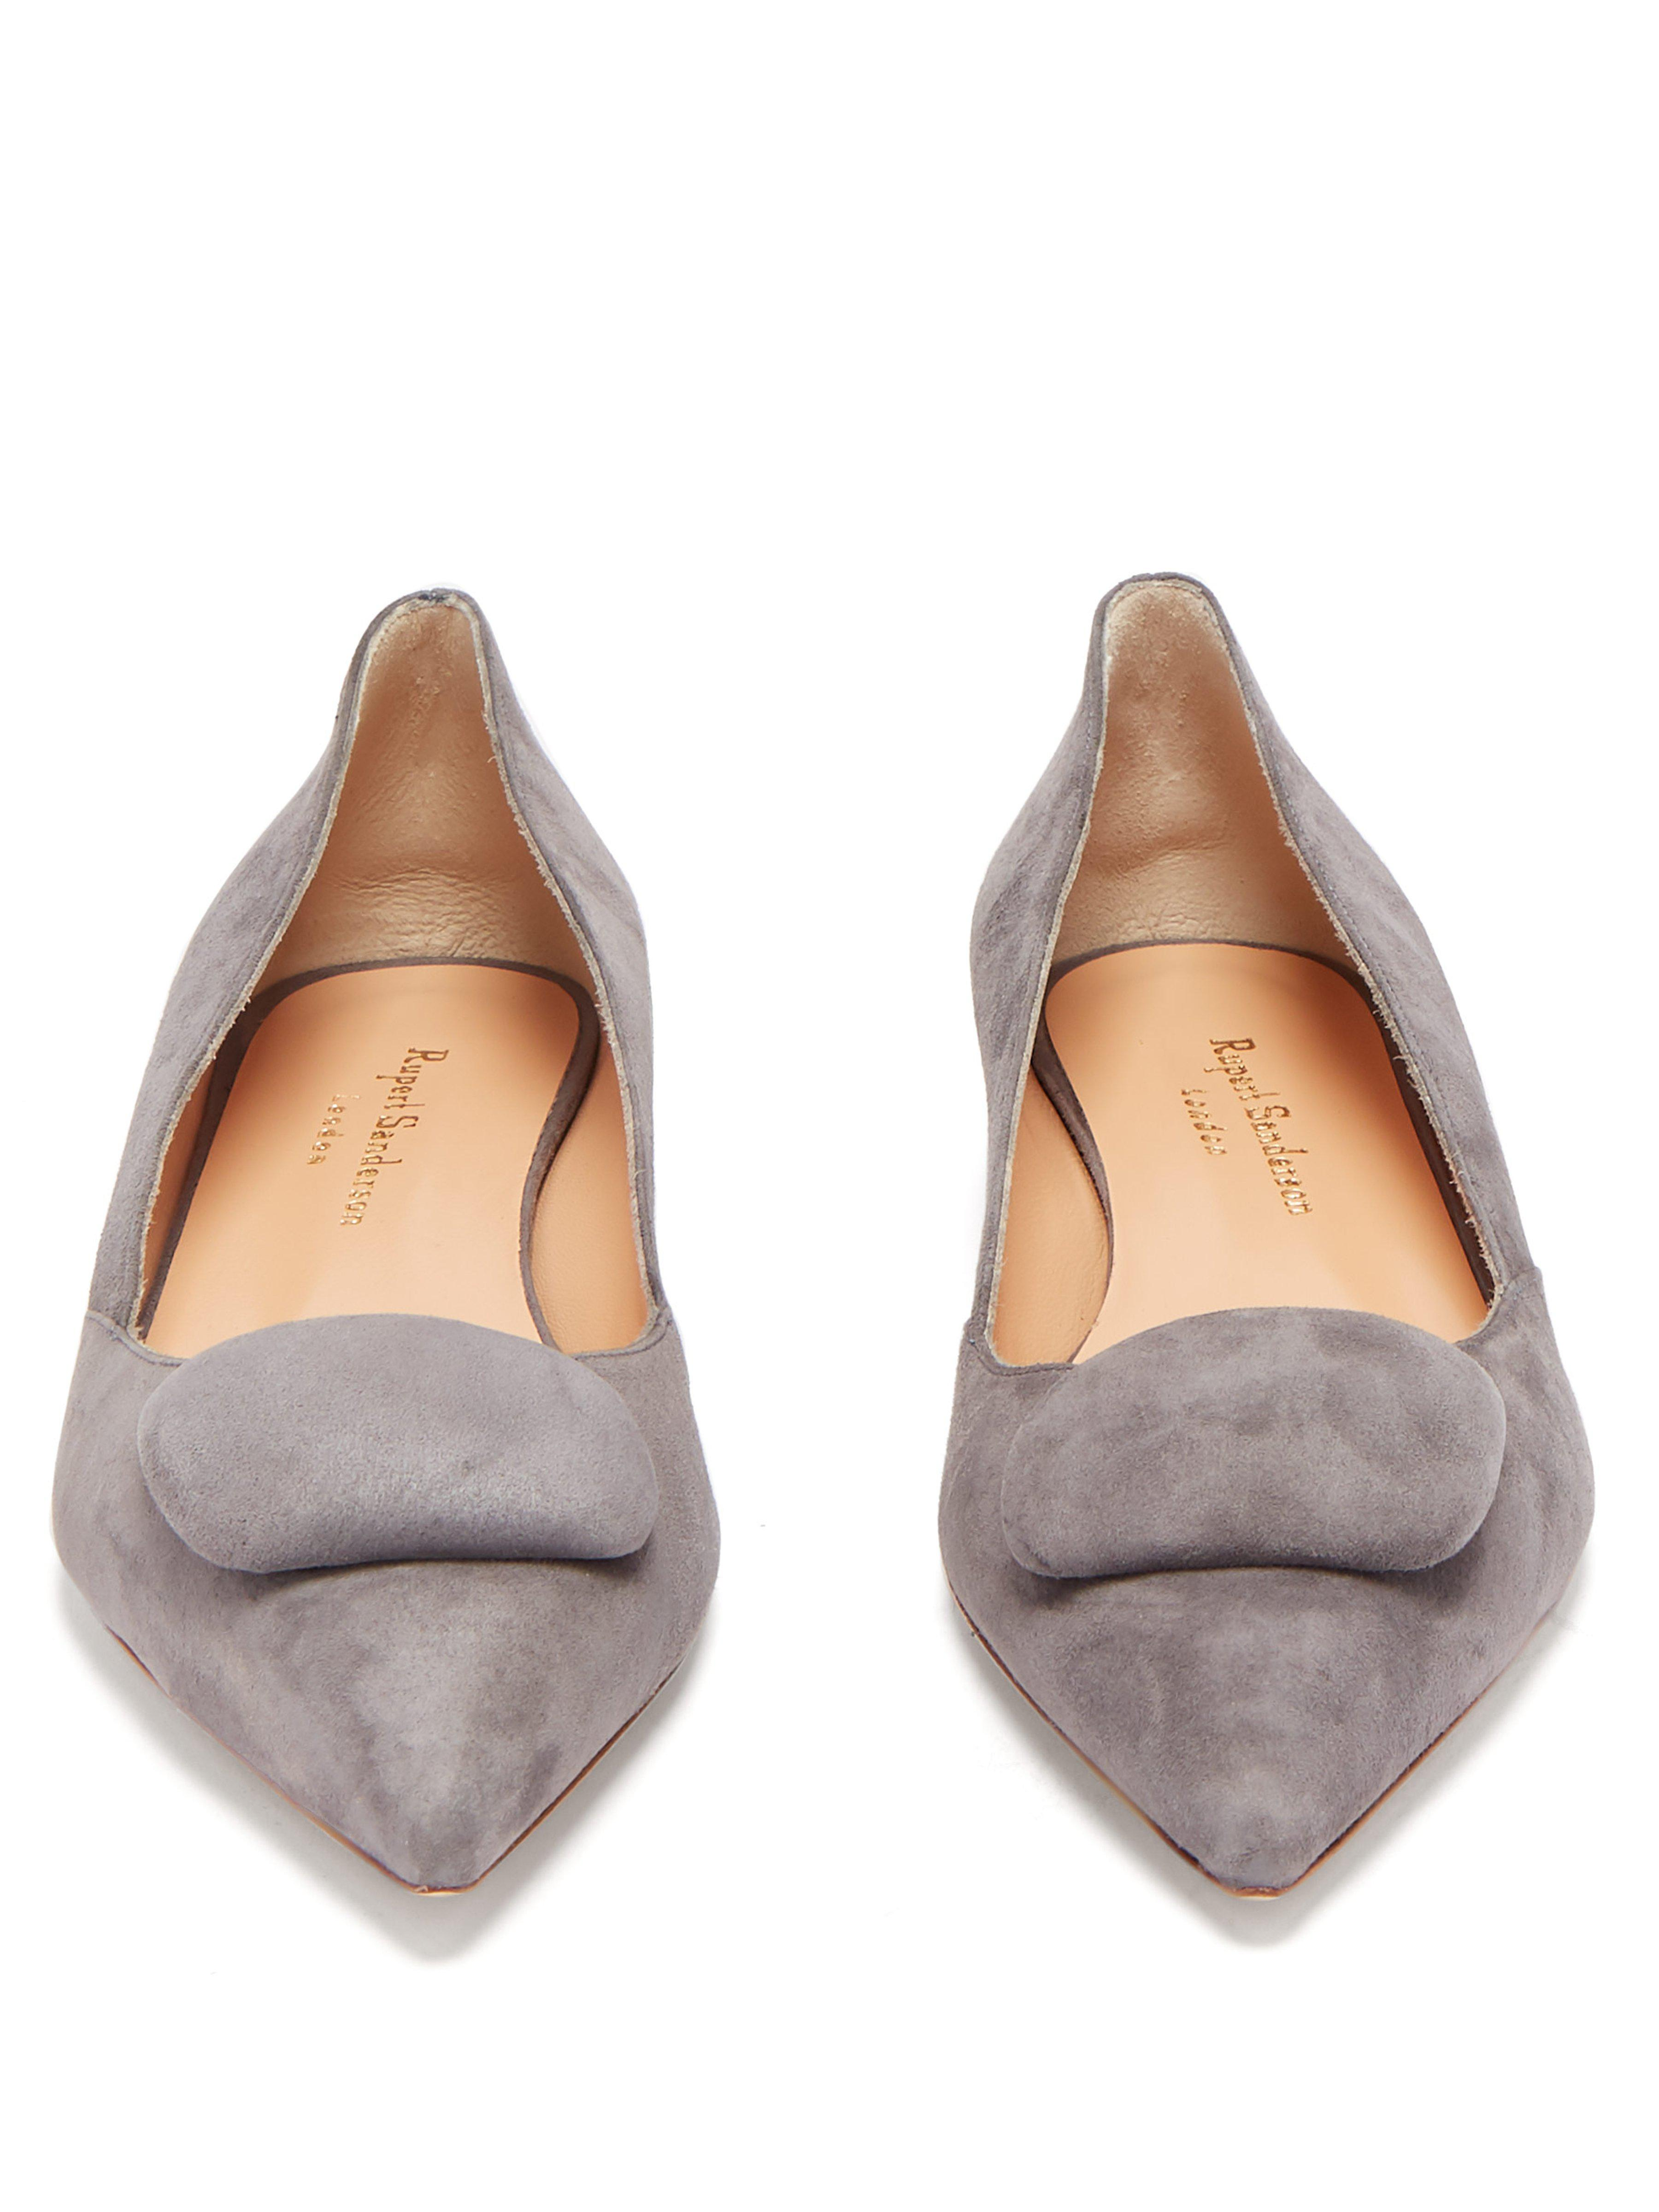 Chaussures plates pointues en daim Aga Rupert Sanderson en coloris Gray